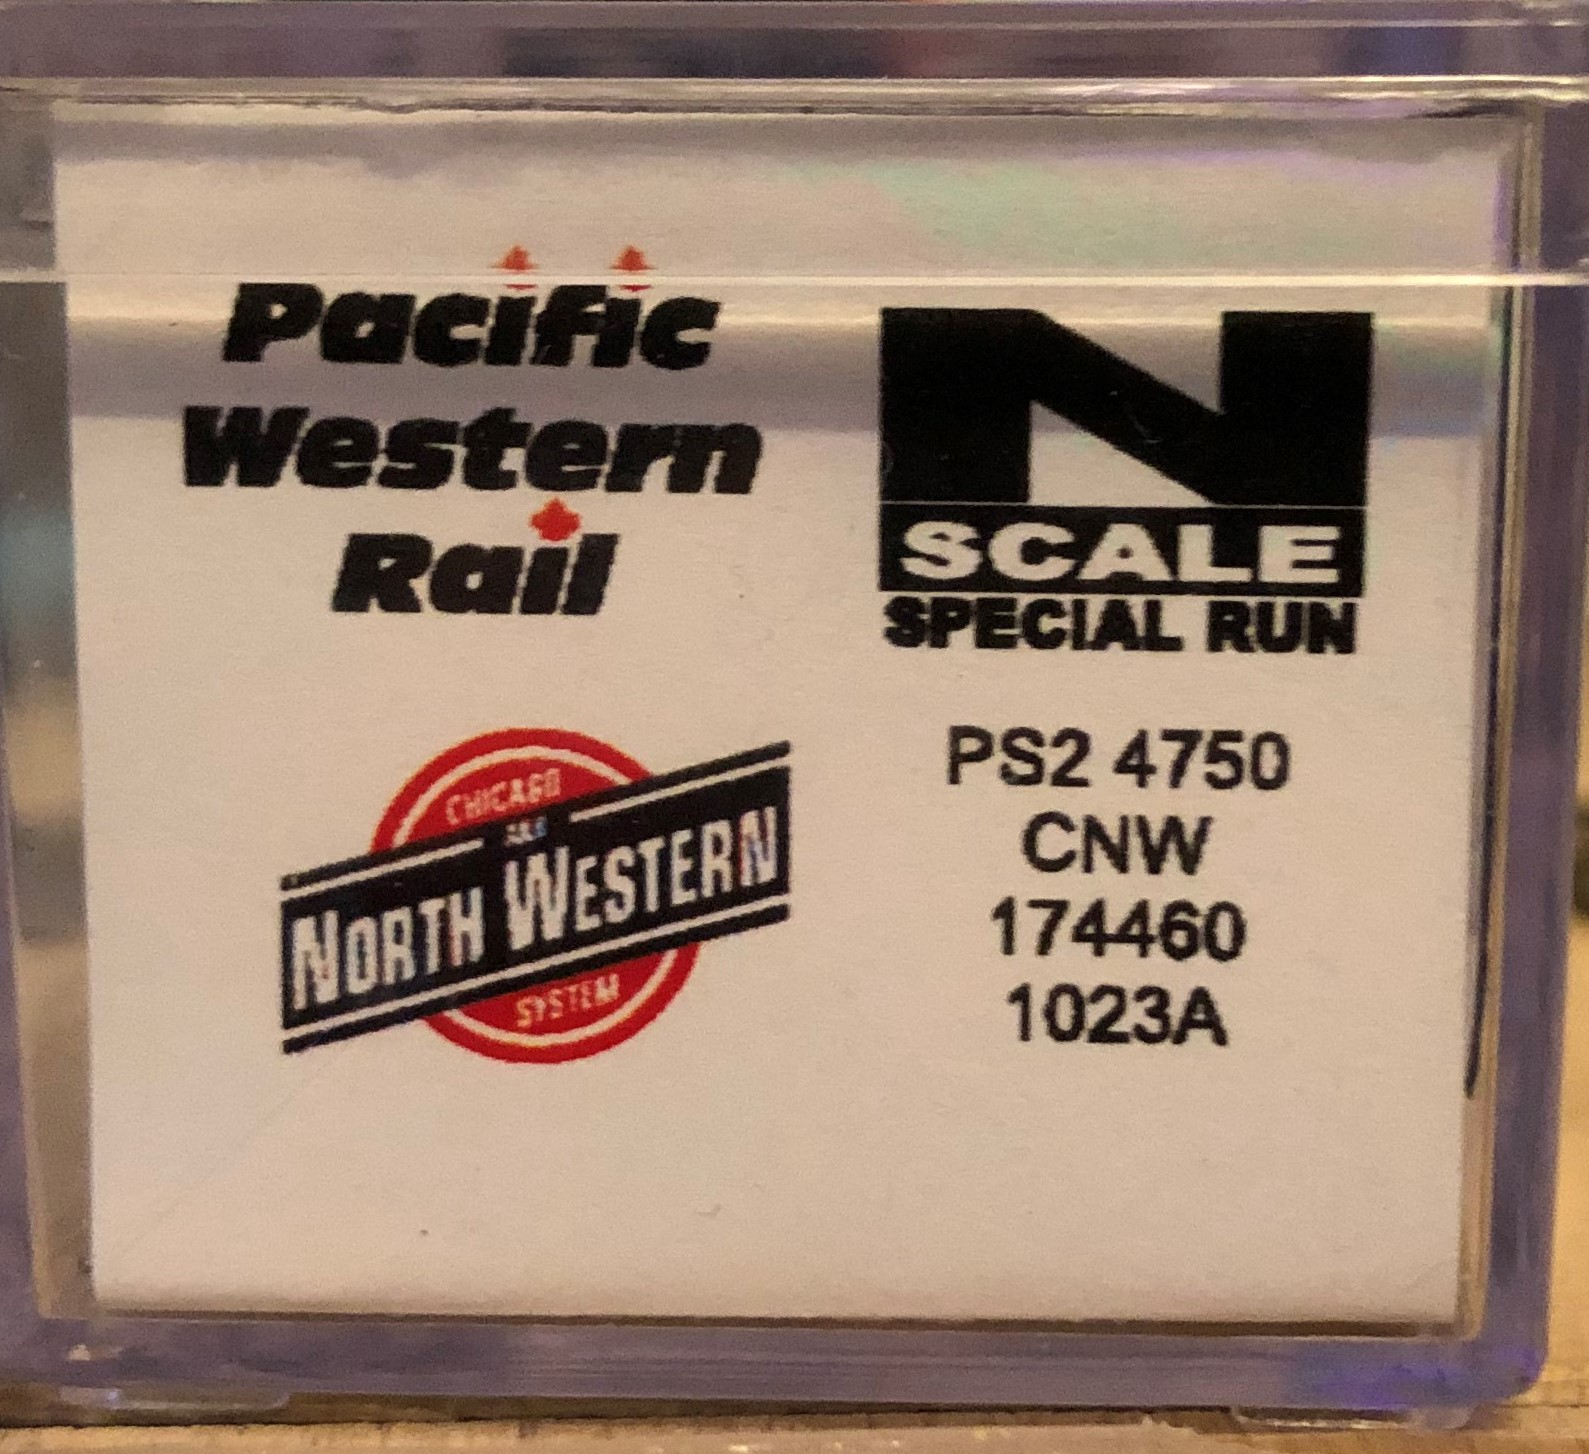 N Scale - Pacific Western Rail Systems - 1023A - Covered Hopper, 3-Bay, Thrall 4750 - Chicago & North Western - 174460